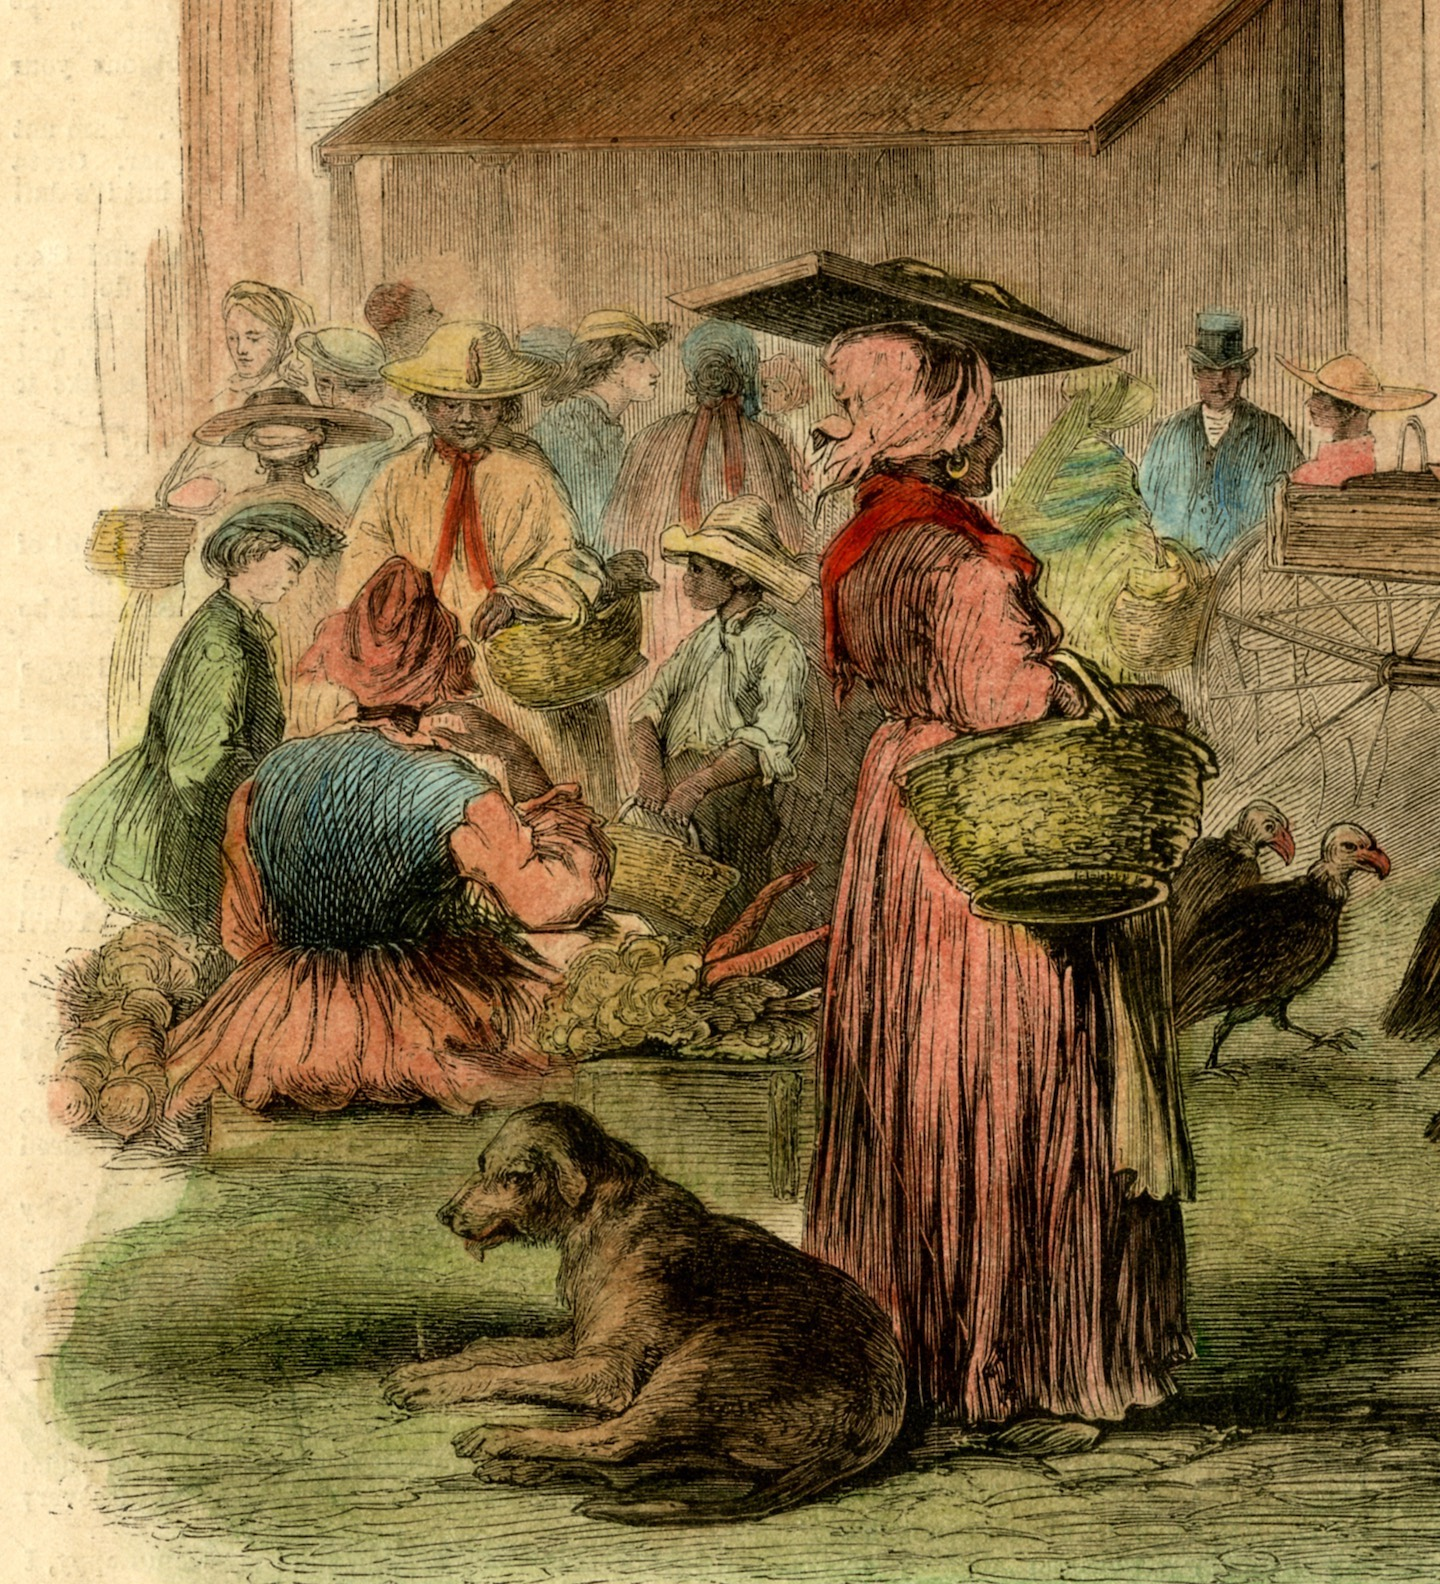 Market vendors in Charleston shown in the October 27, 1866 edition of Leslies Illustrated News.